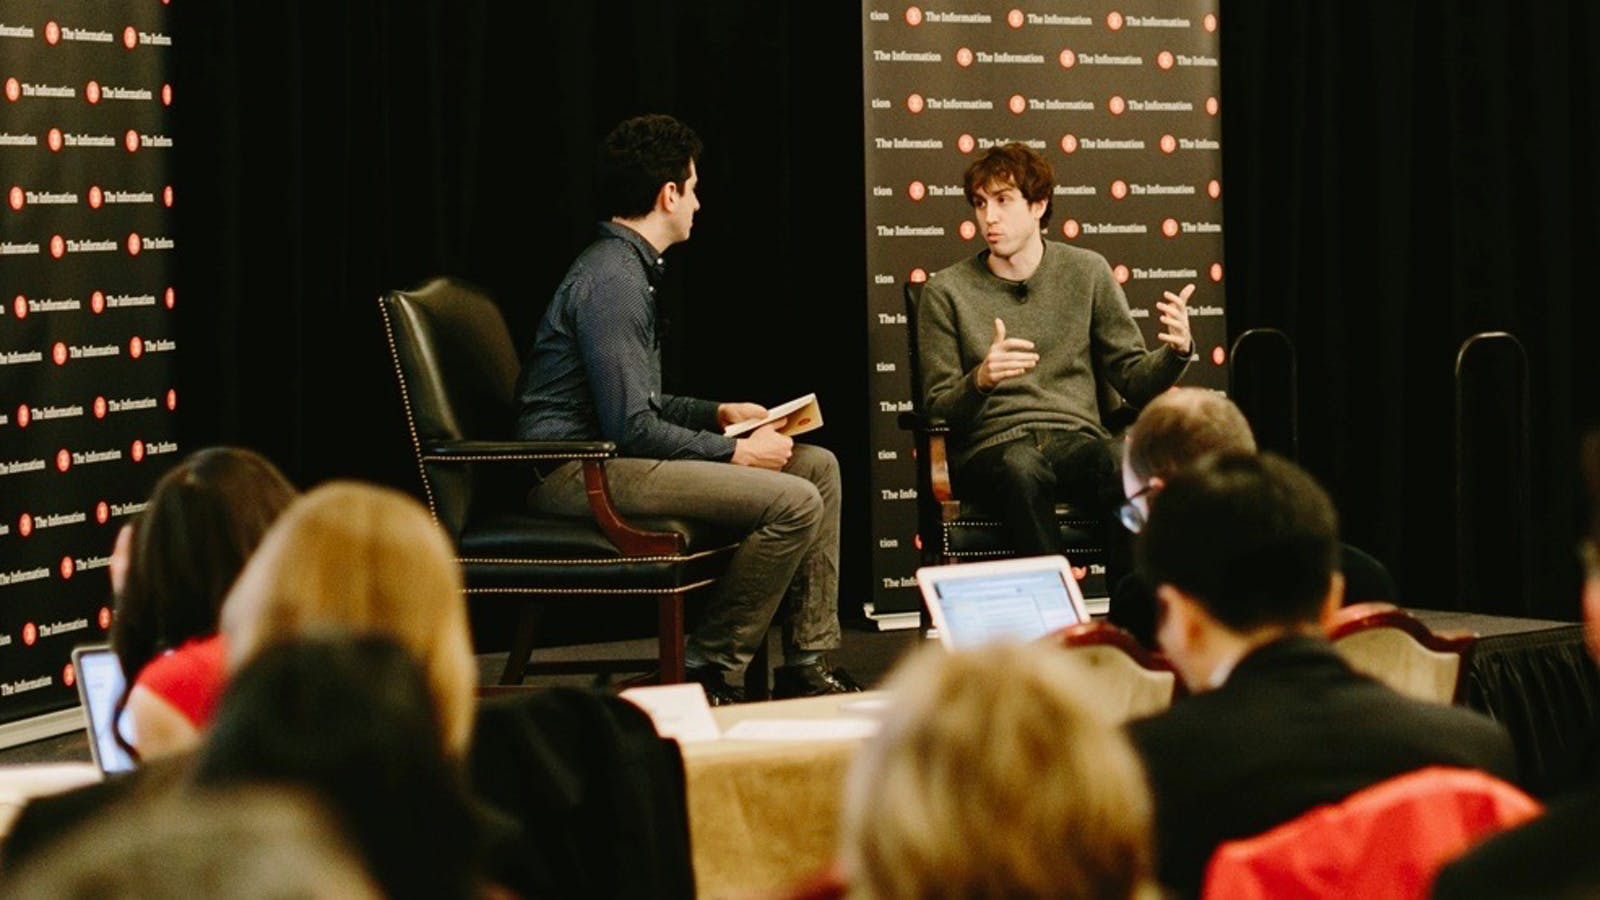 Quora CEO Adam D'Angelo talking with The Information's Tom Dotan at The Information's NYC Subscriber Summit on Tuesday. Photo by Karen Obrist